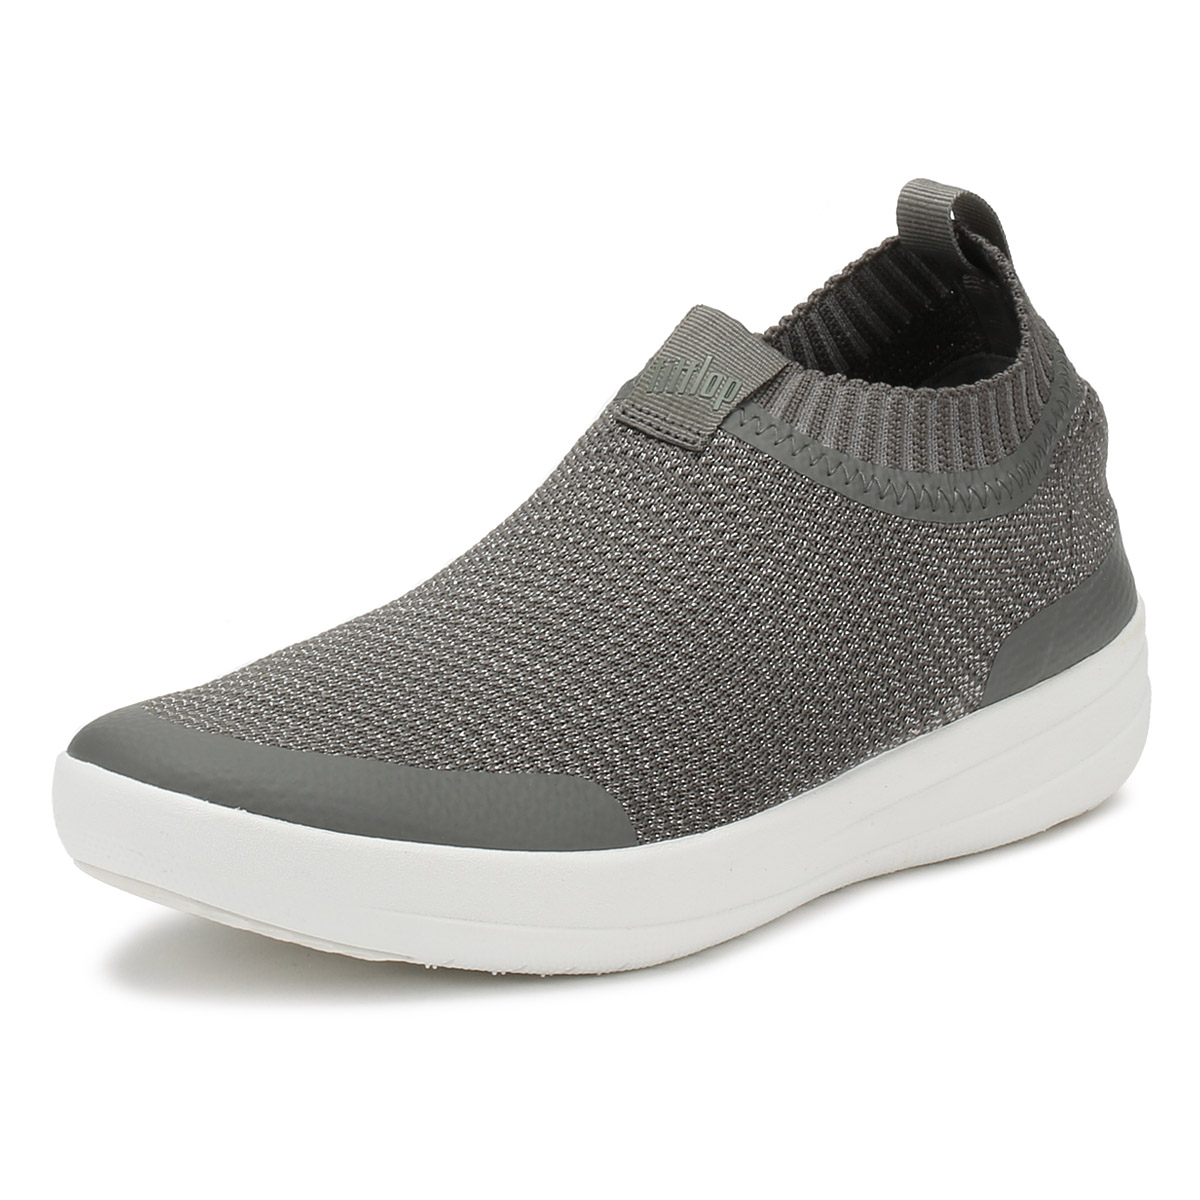 4aa04c261 Details about FitFlop Womens Charcoal   Metallic Uberknit Slip On Trainers  Casual Shoes